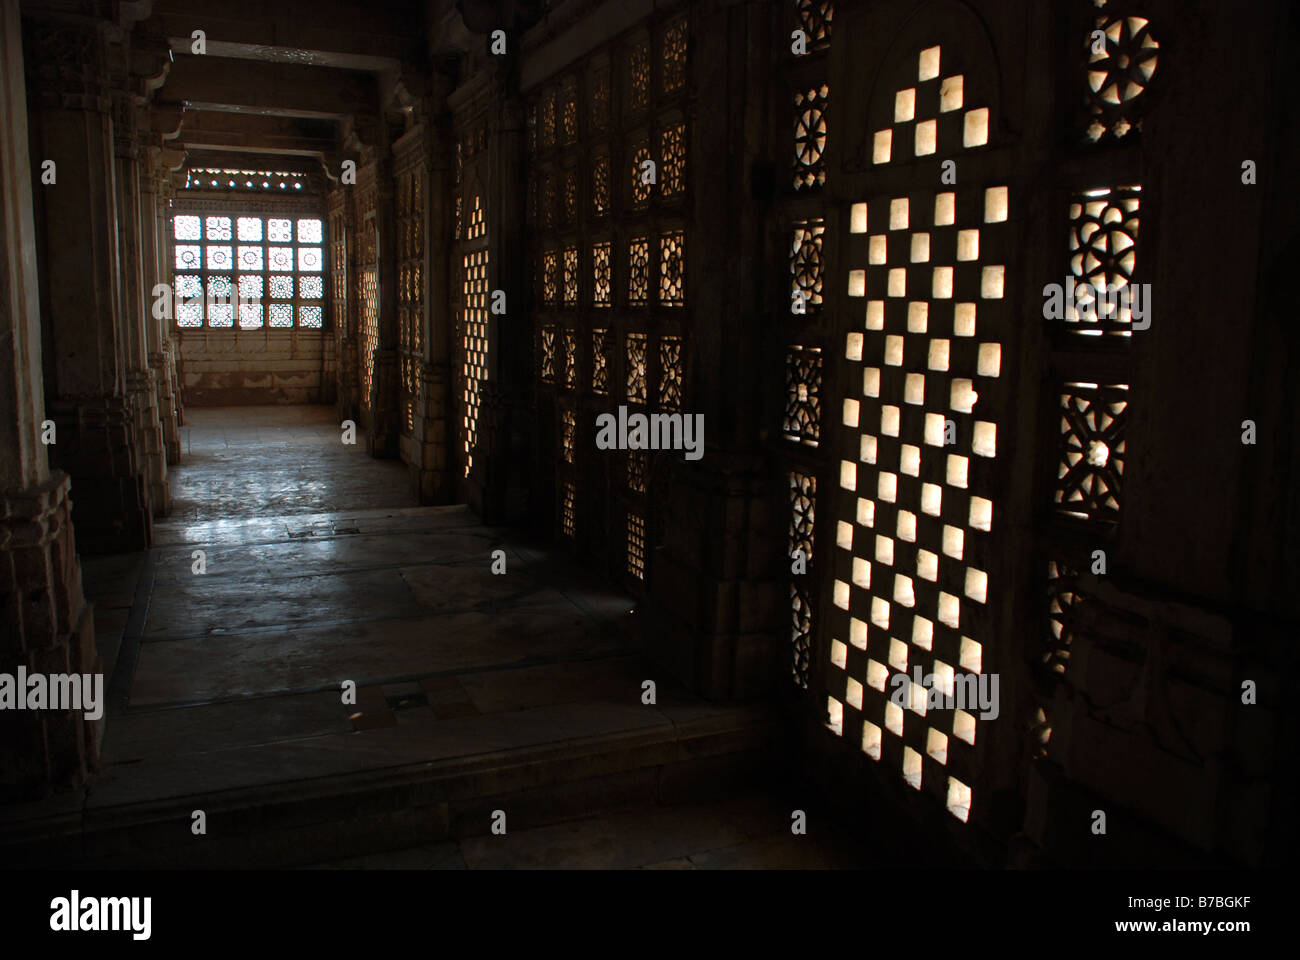 Interior of Sarkhej Rosa, Ahmedabad, India. - Stock Image